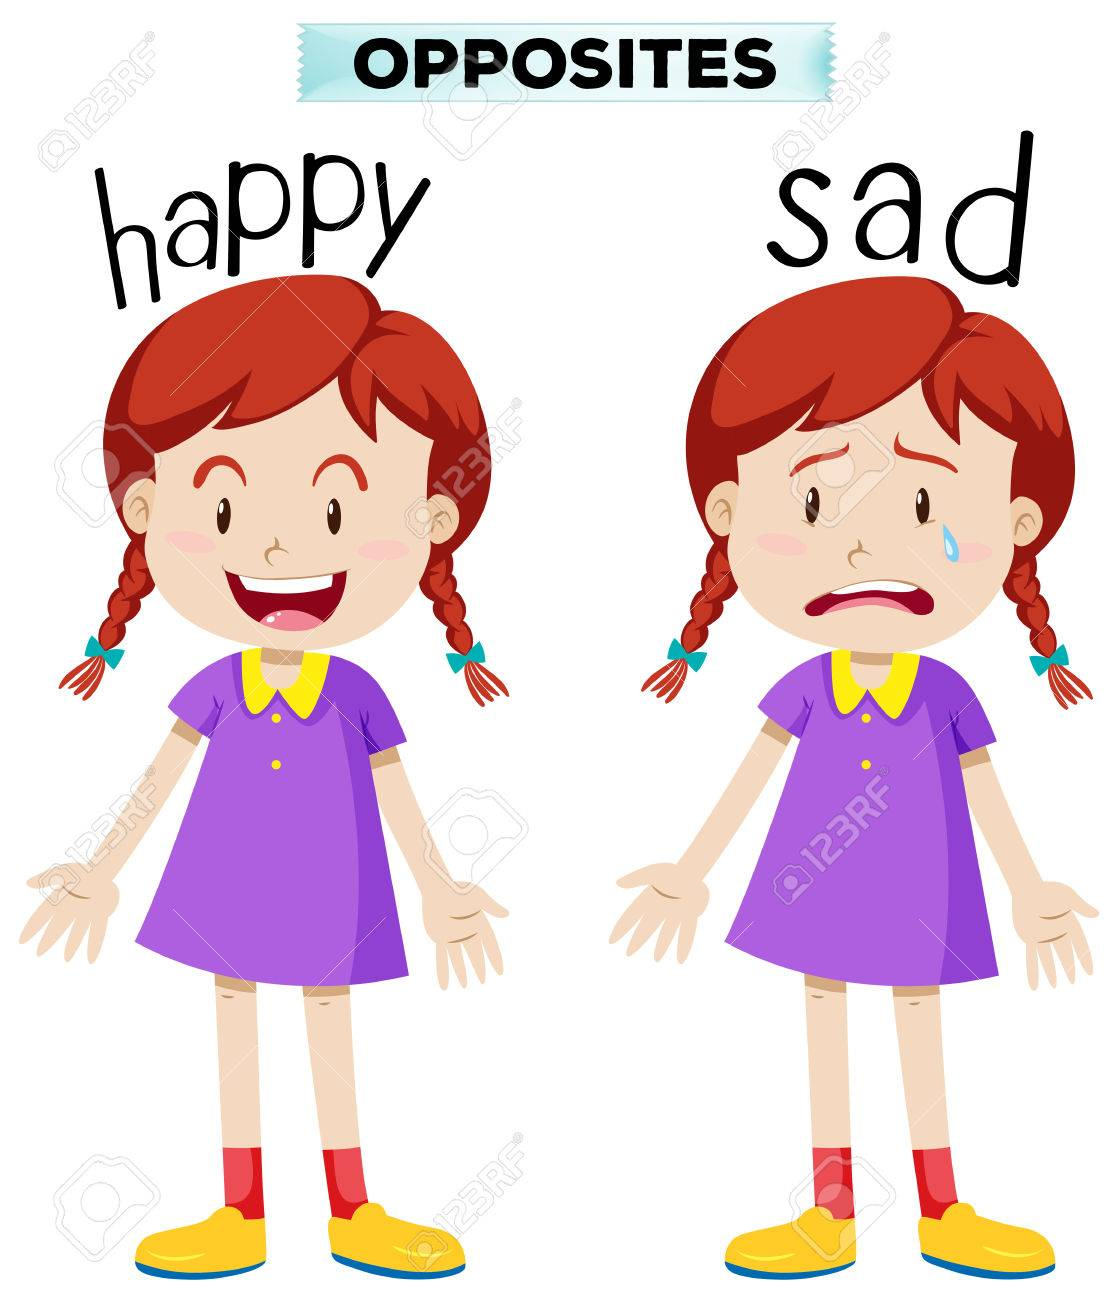 Opposite words with happy and sad illustration.